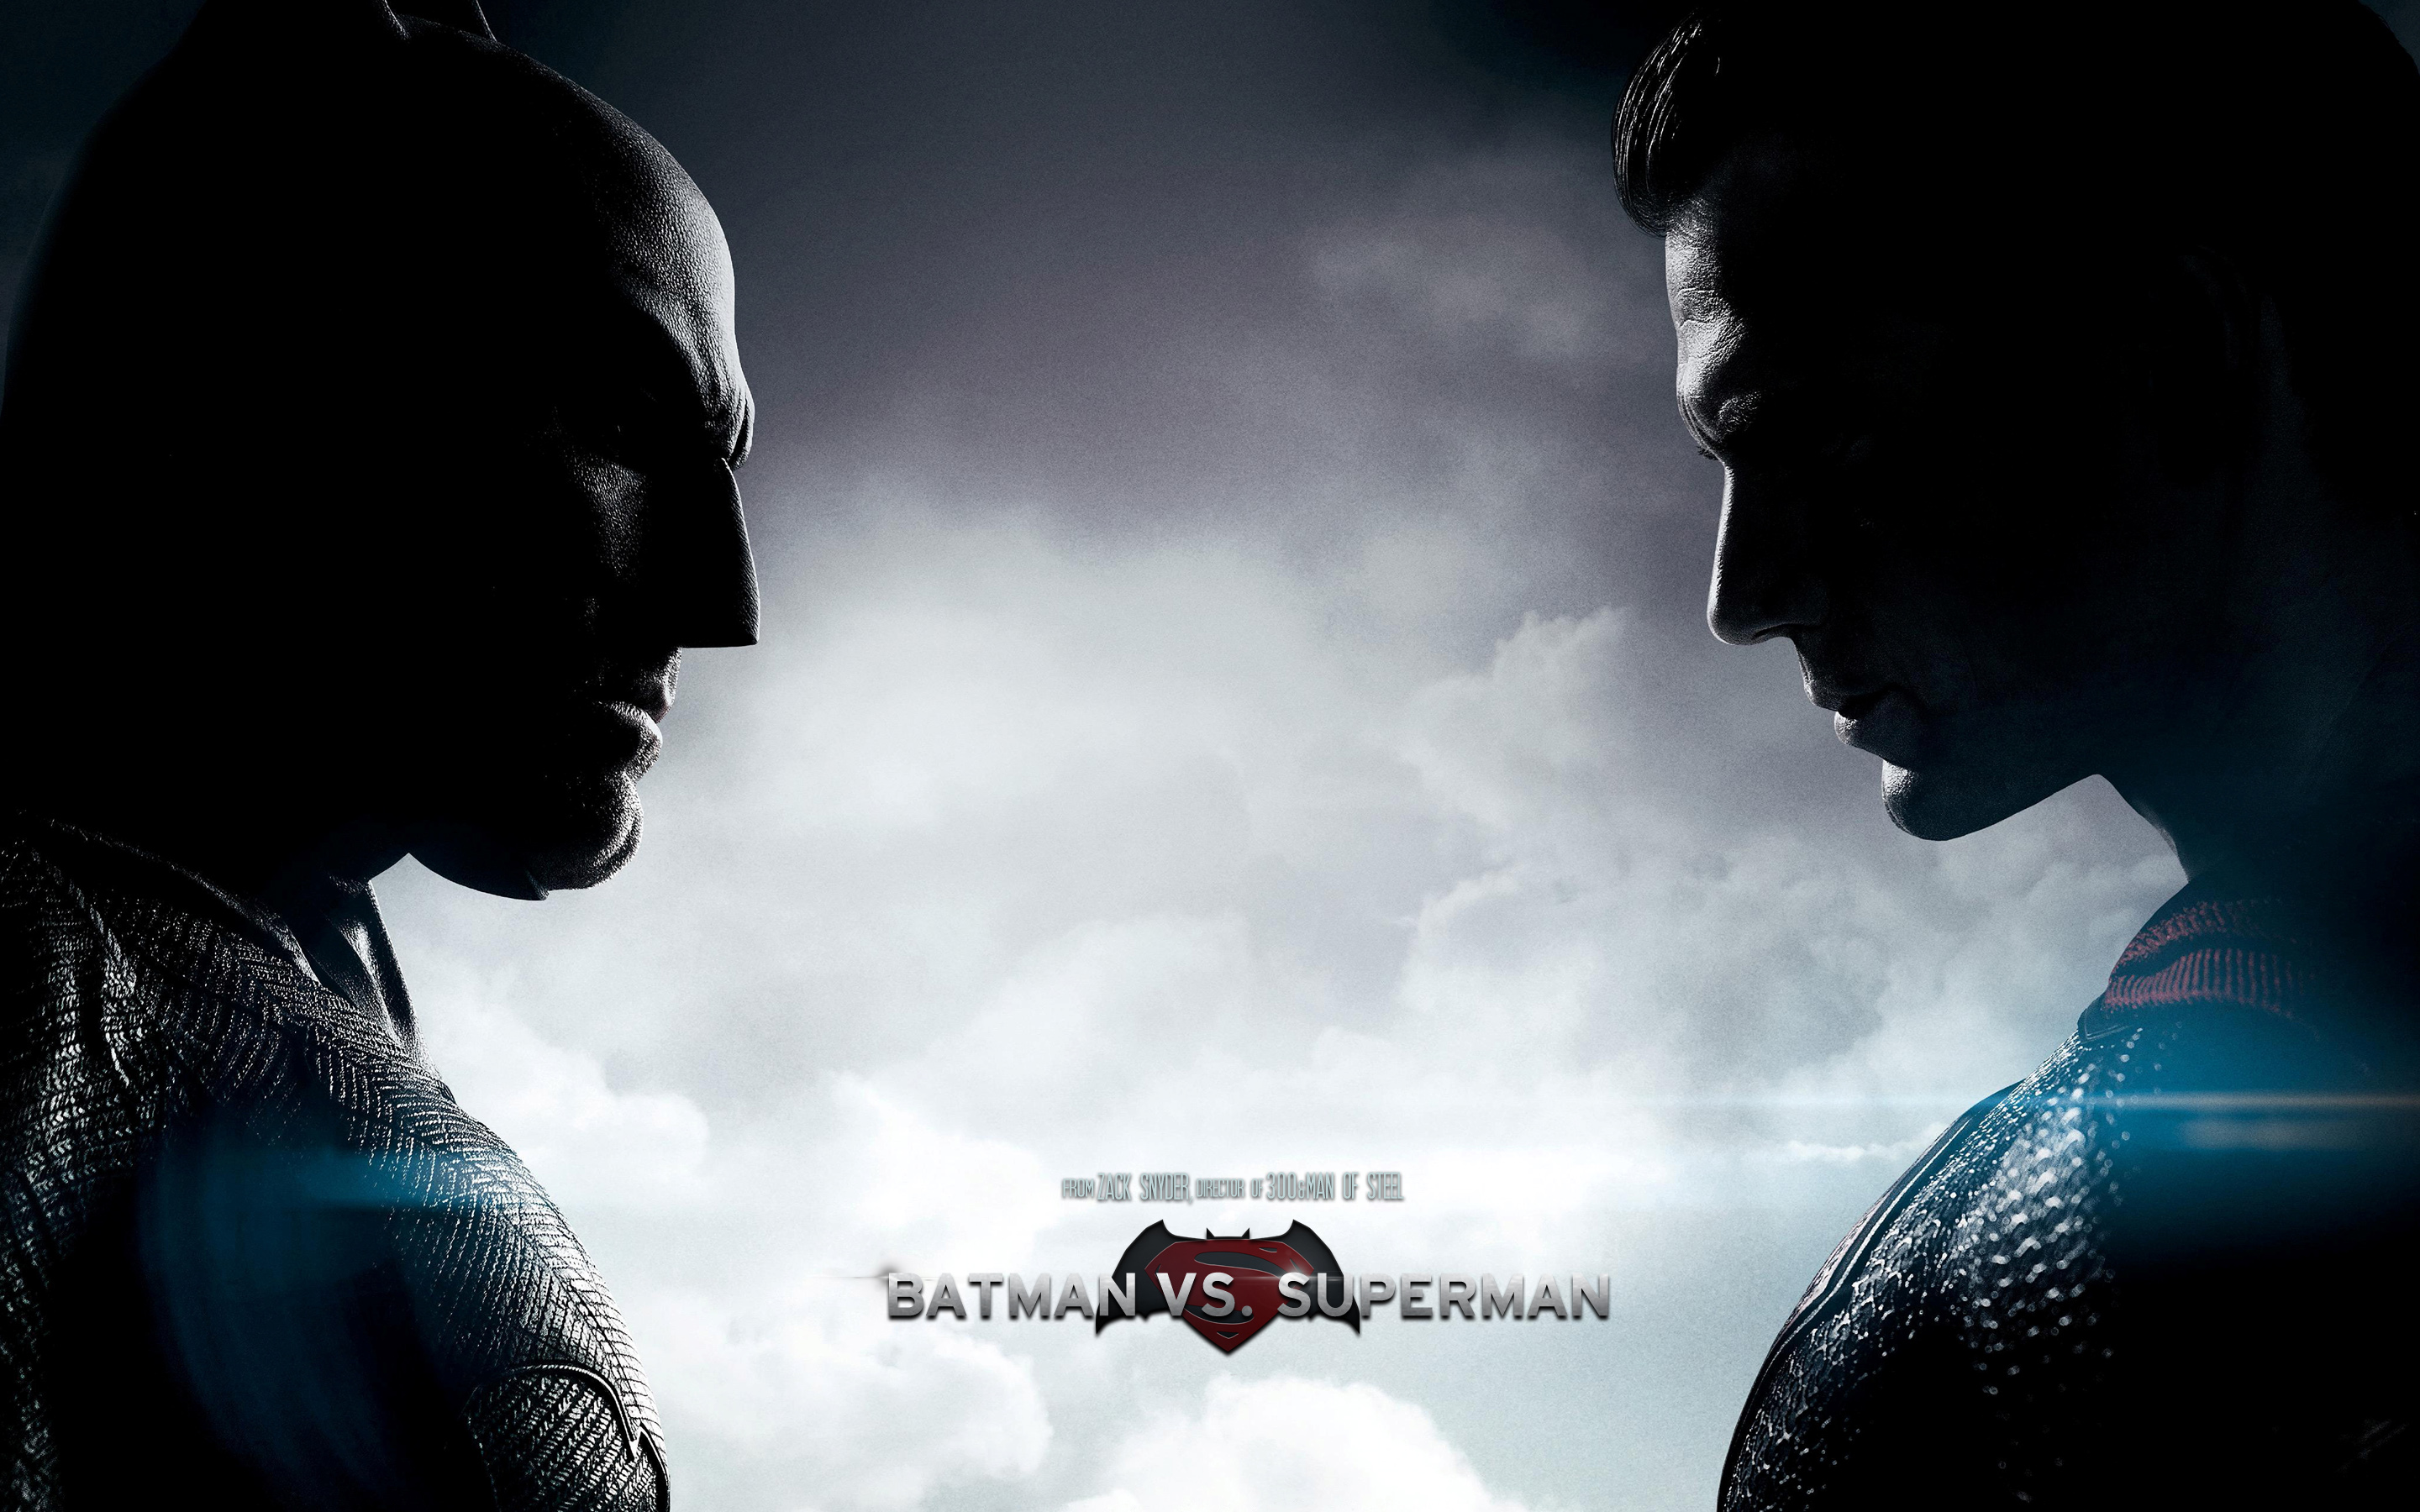 Hd Wallpapers Batman Vs Superman Download in Many size ranging from 2880x1800